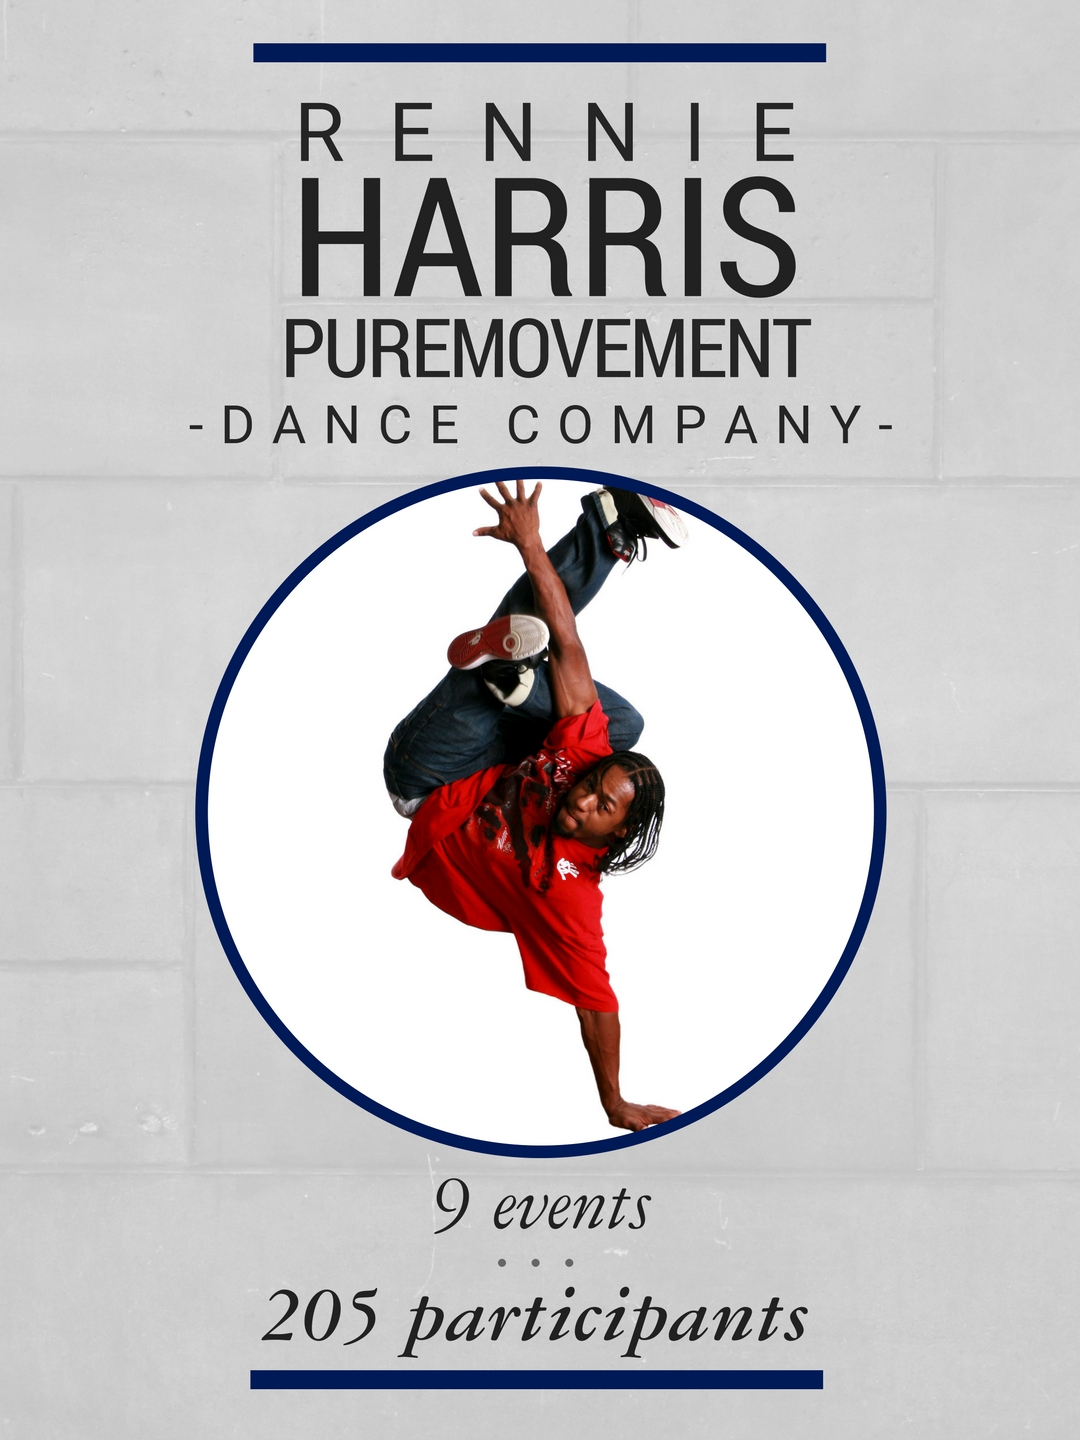 During their time on campus, the Rennie Harris Puremovement Dance Company hosted 9 events with 205 participants